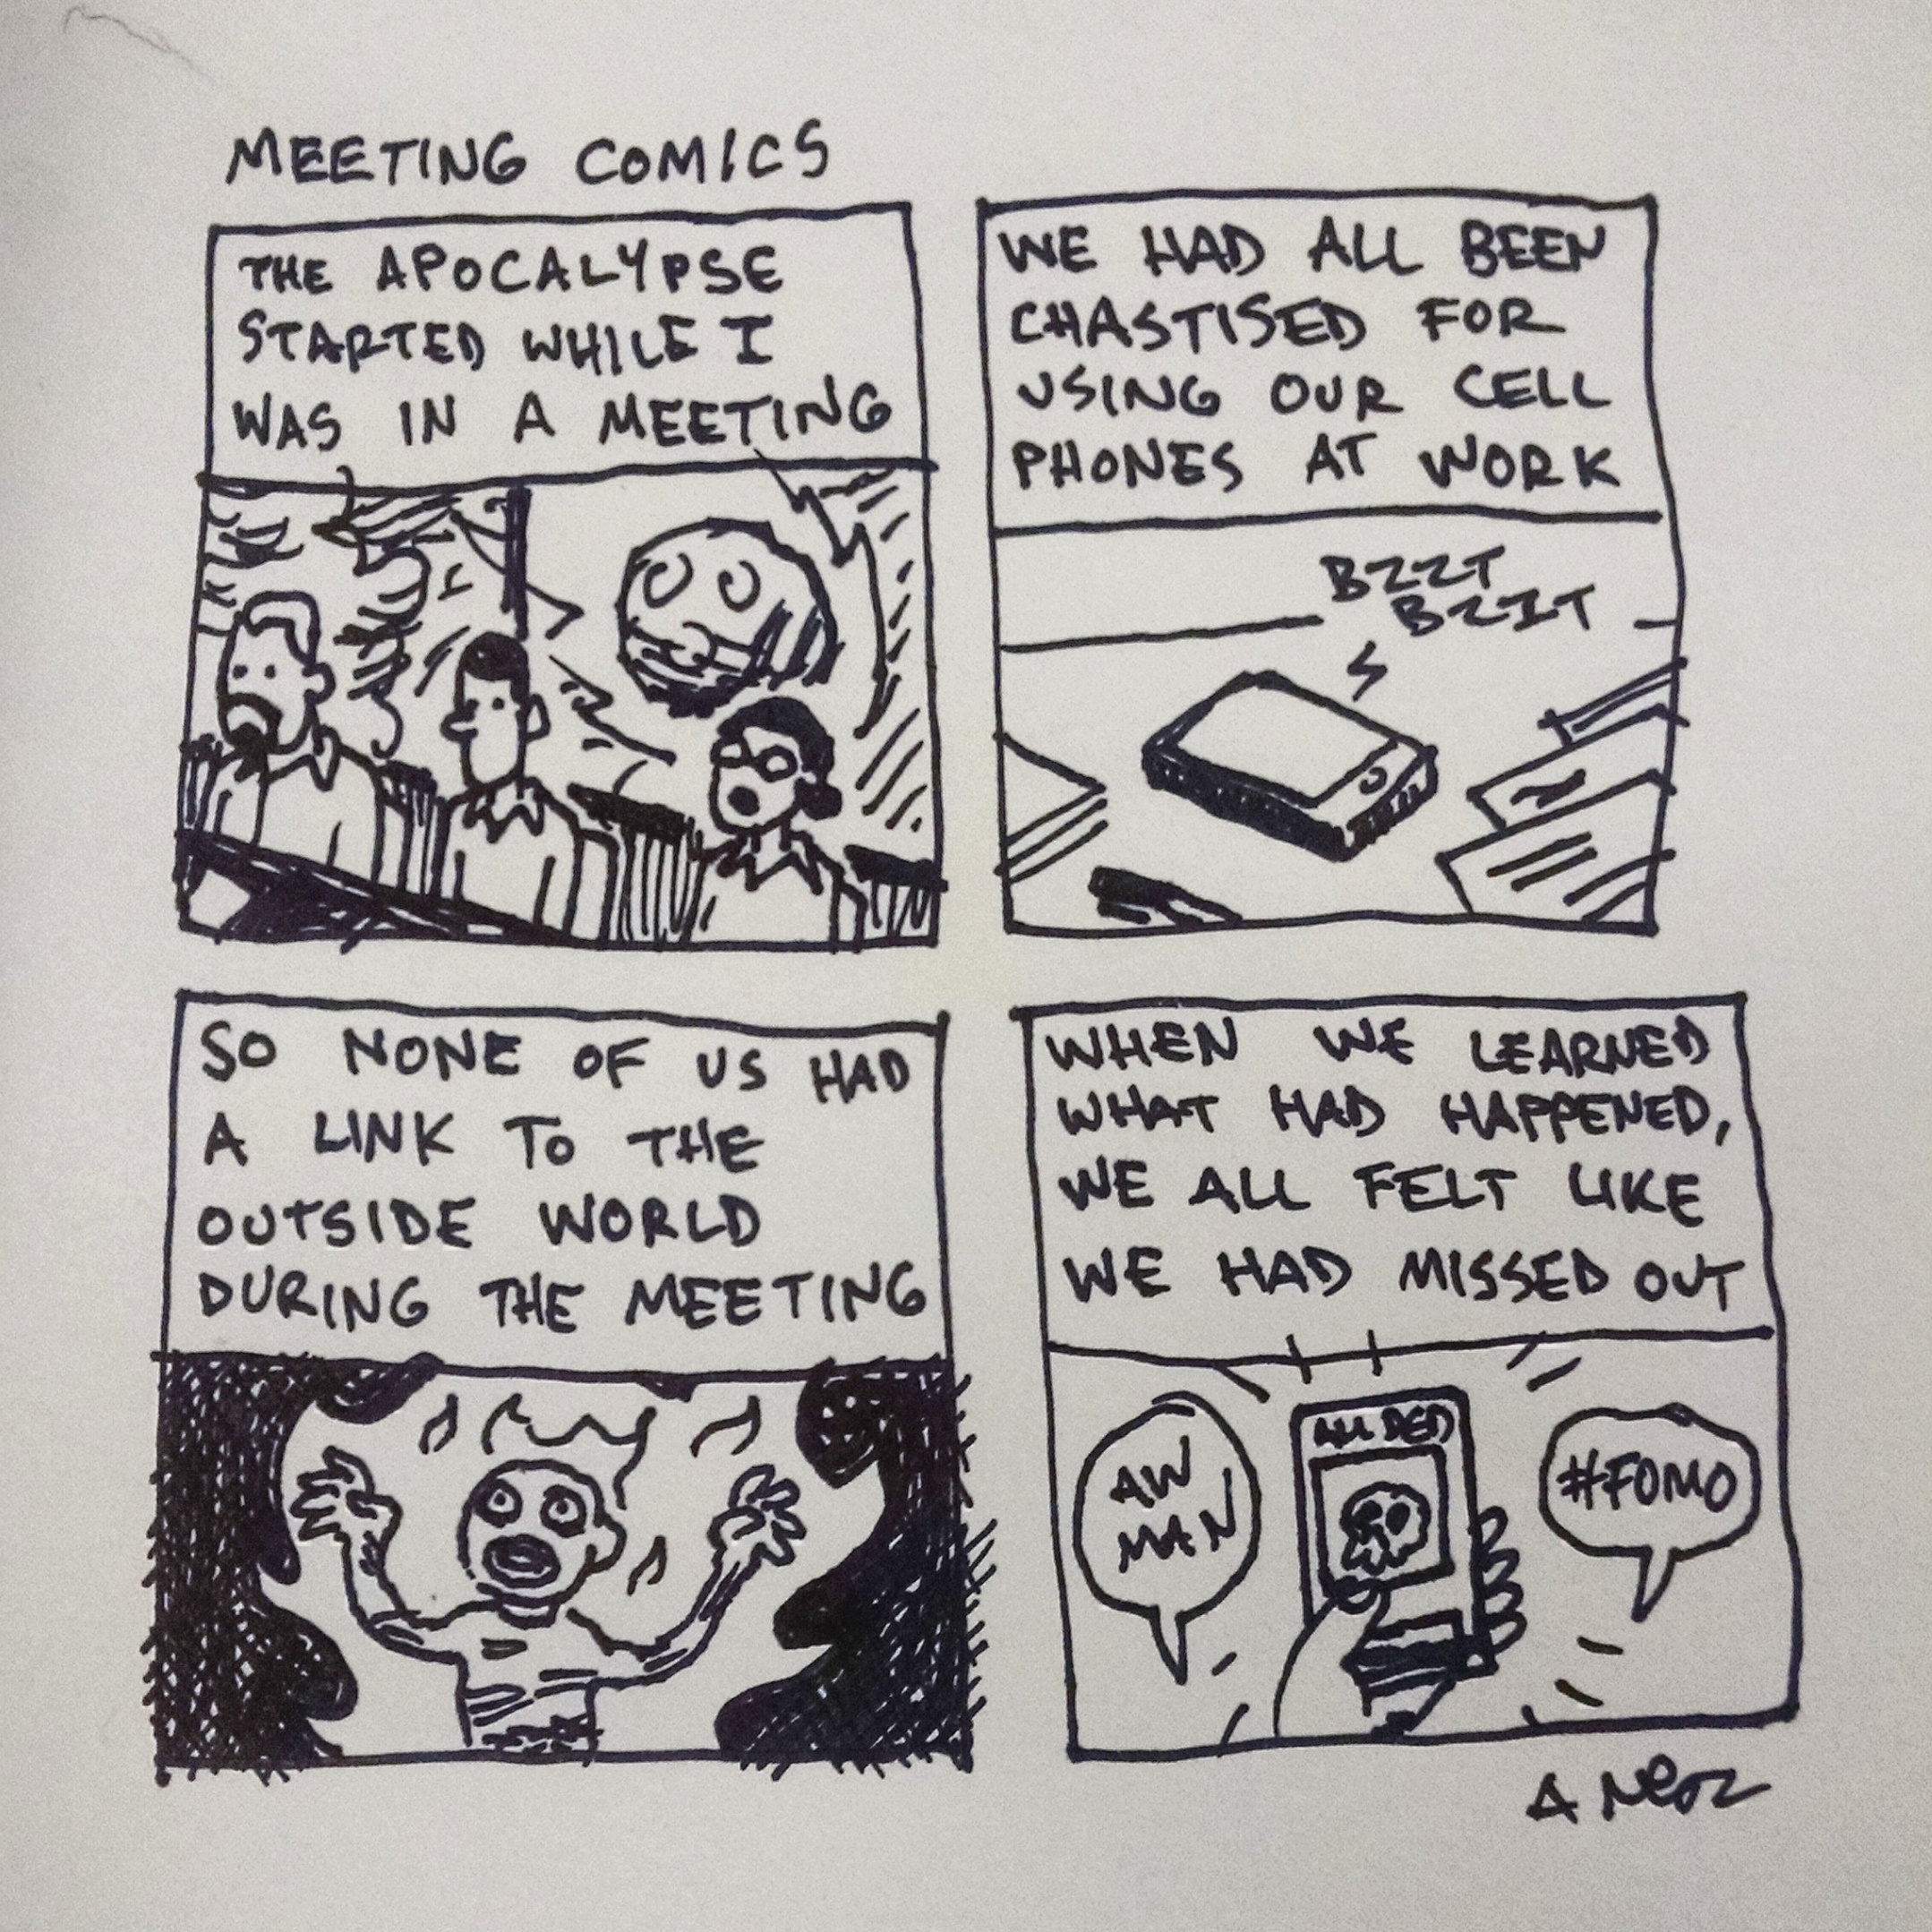 Meeting Comics from February 21, 2018.